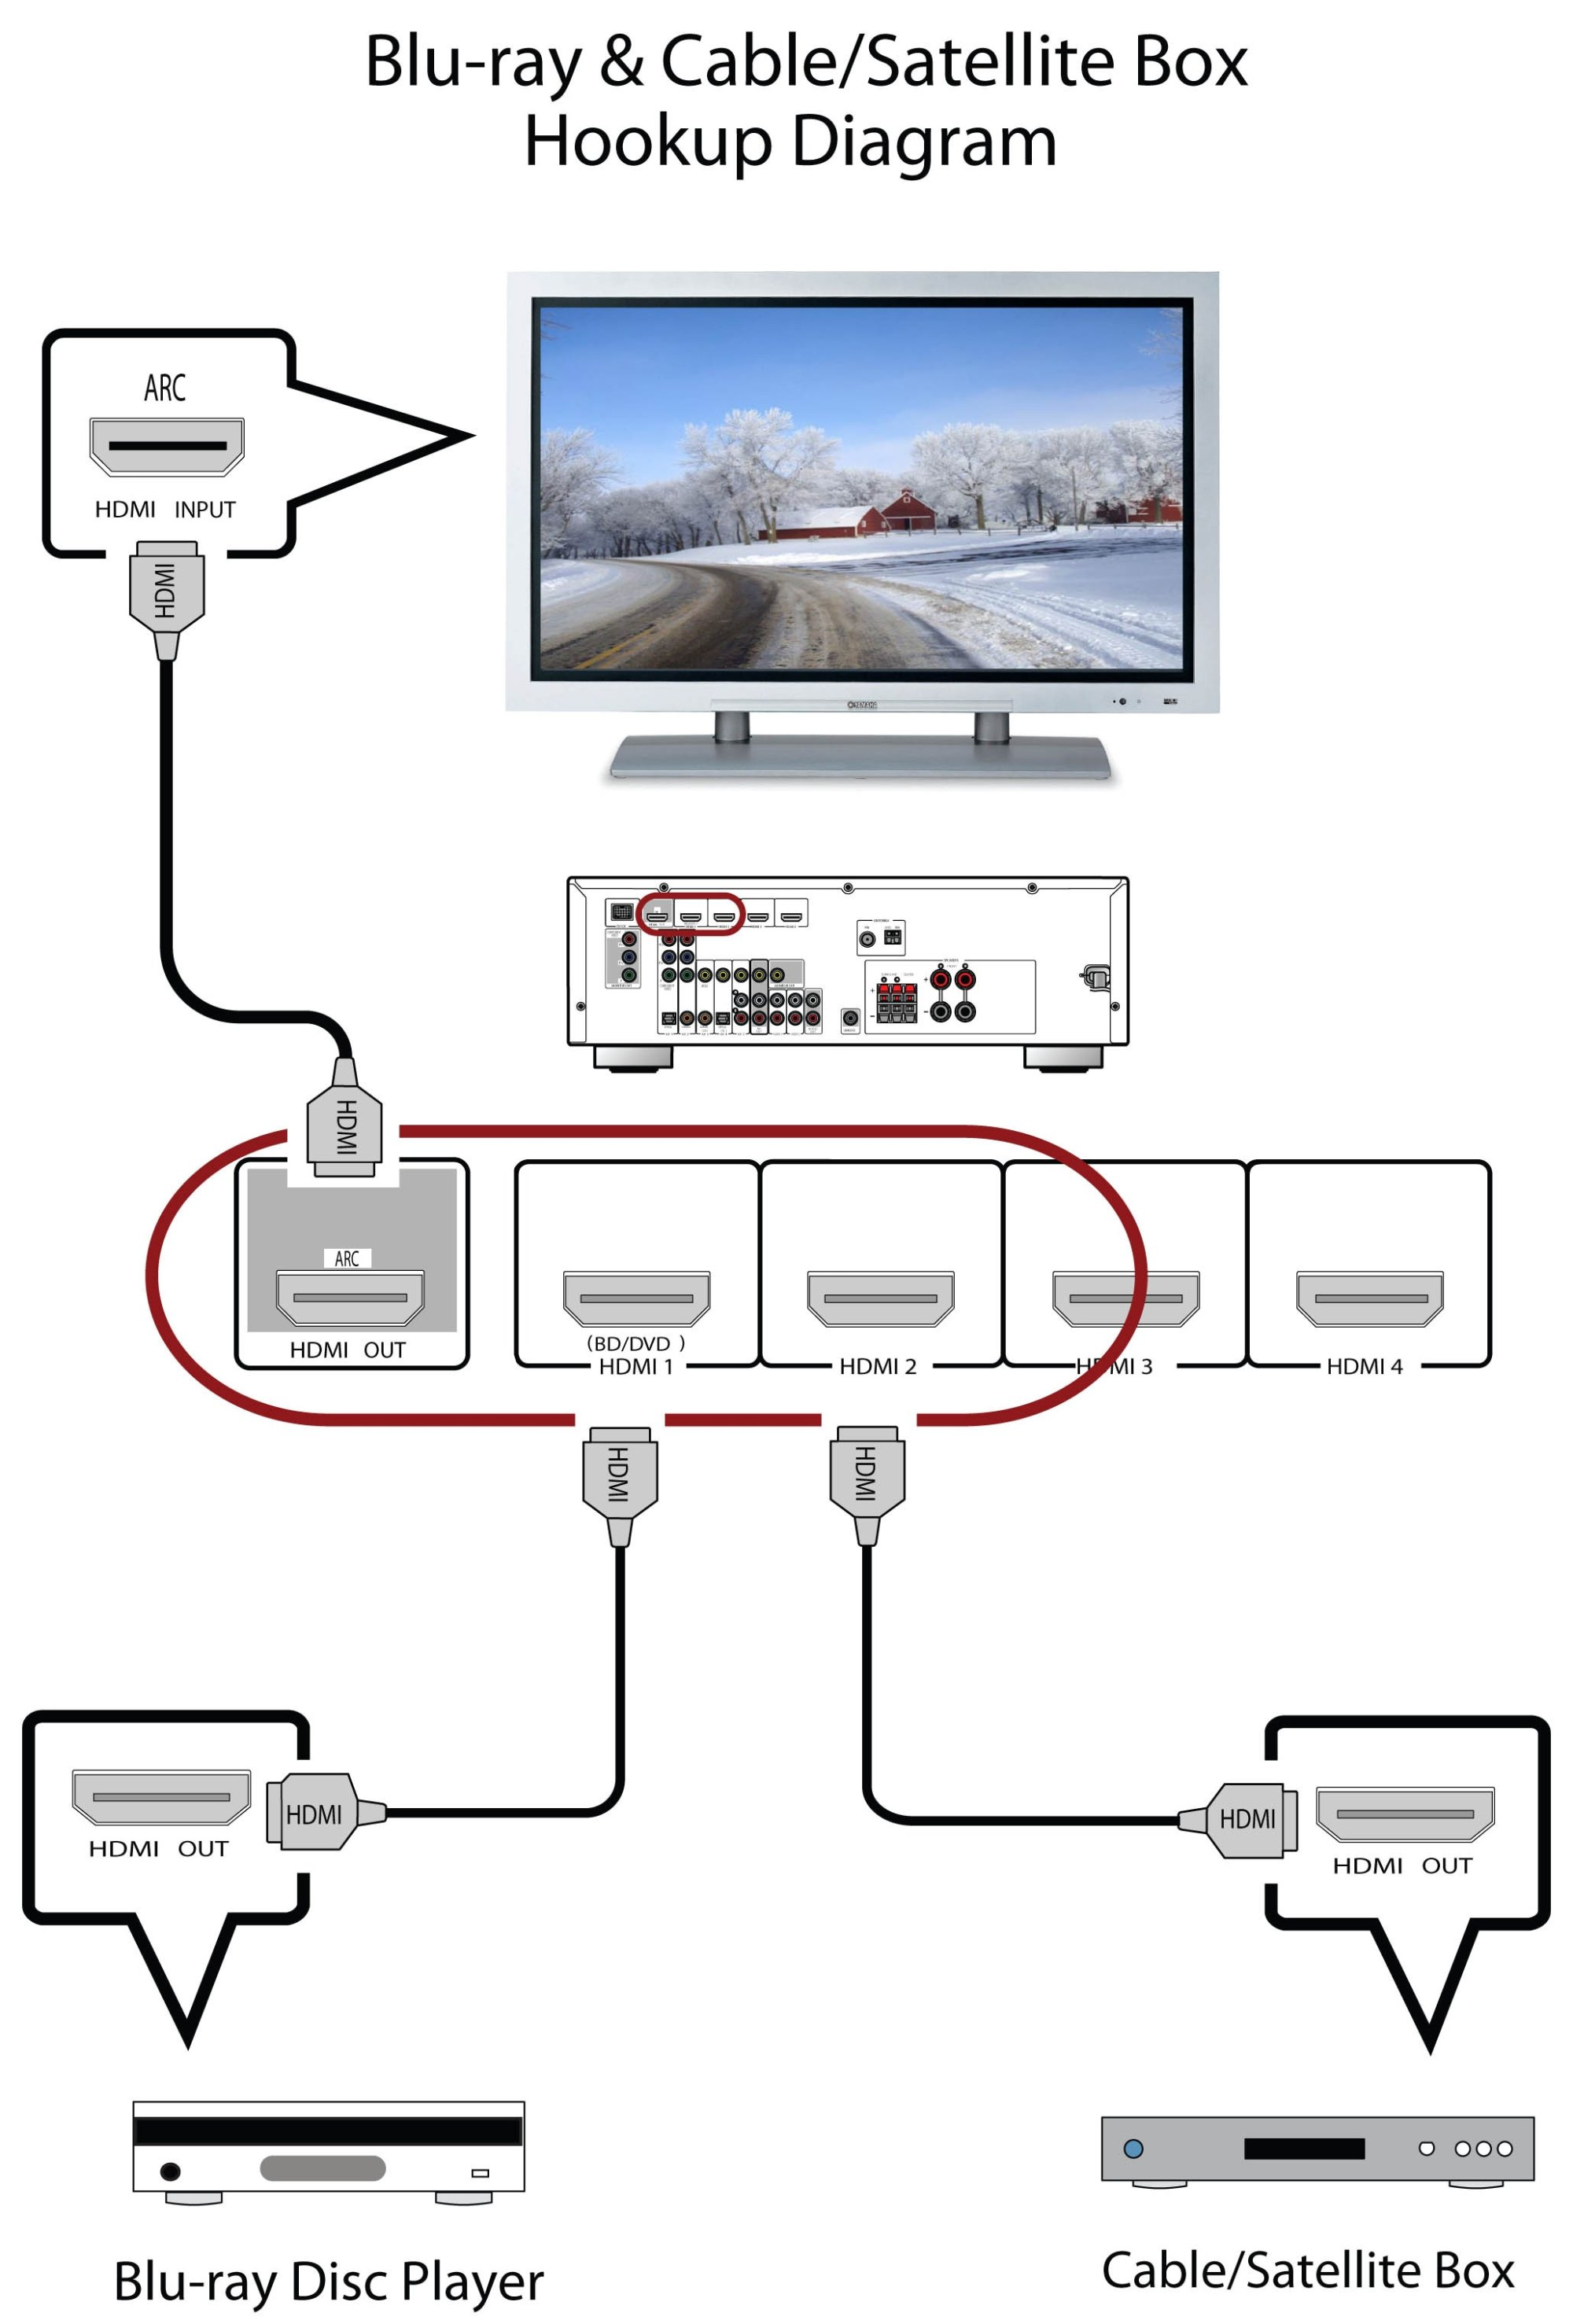 hight resolution of rx v375 blu ray and cable satellite hdmi hookup diagram